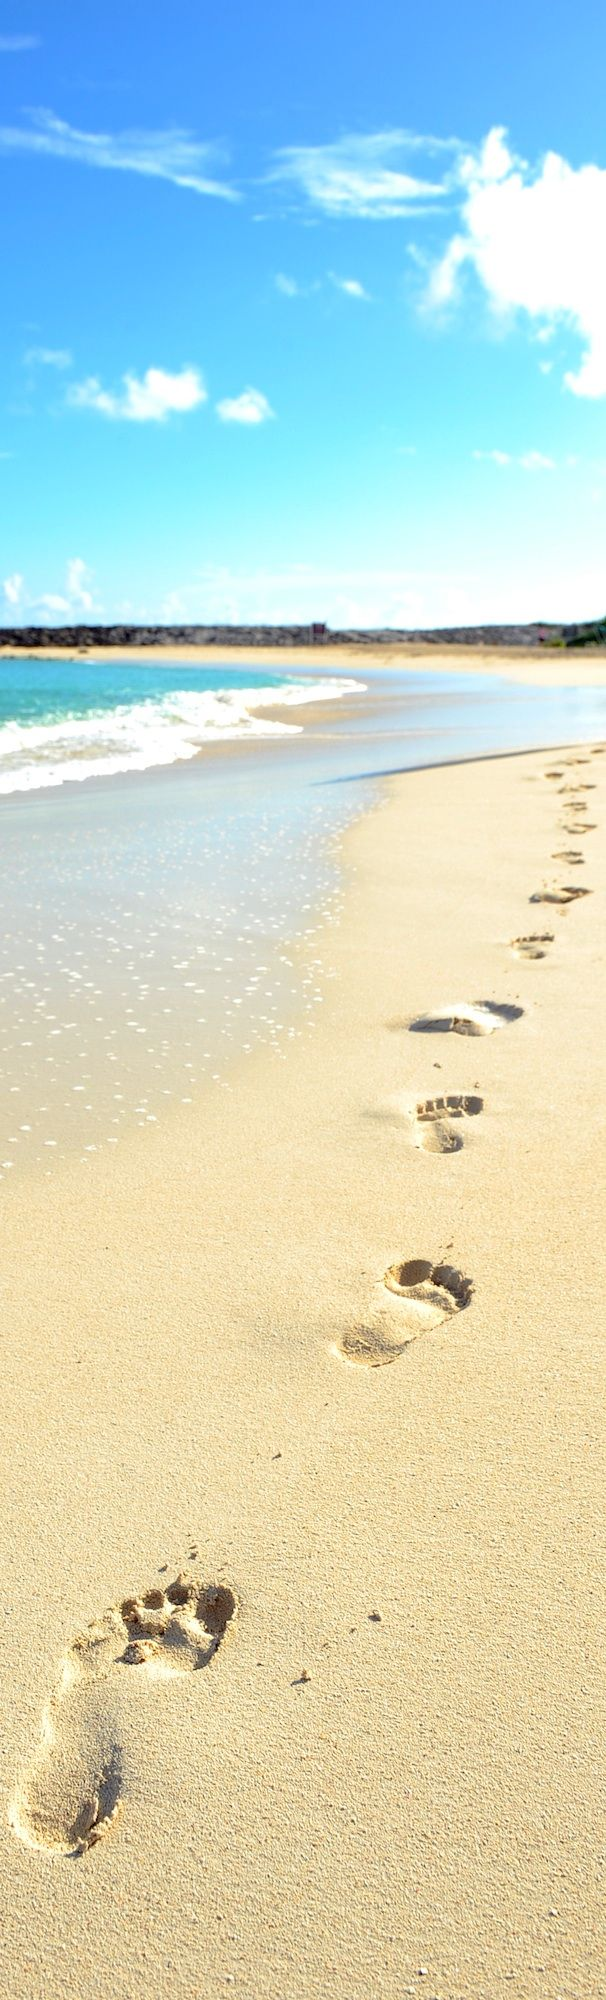 Come take a walk on the beach in The Bahamas!